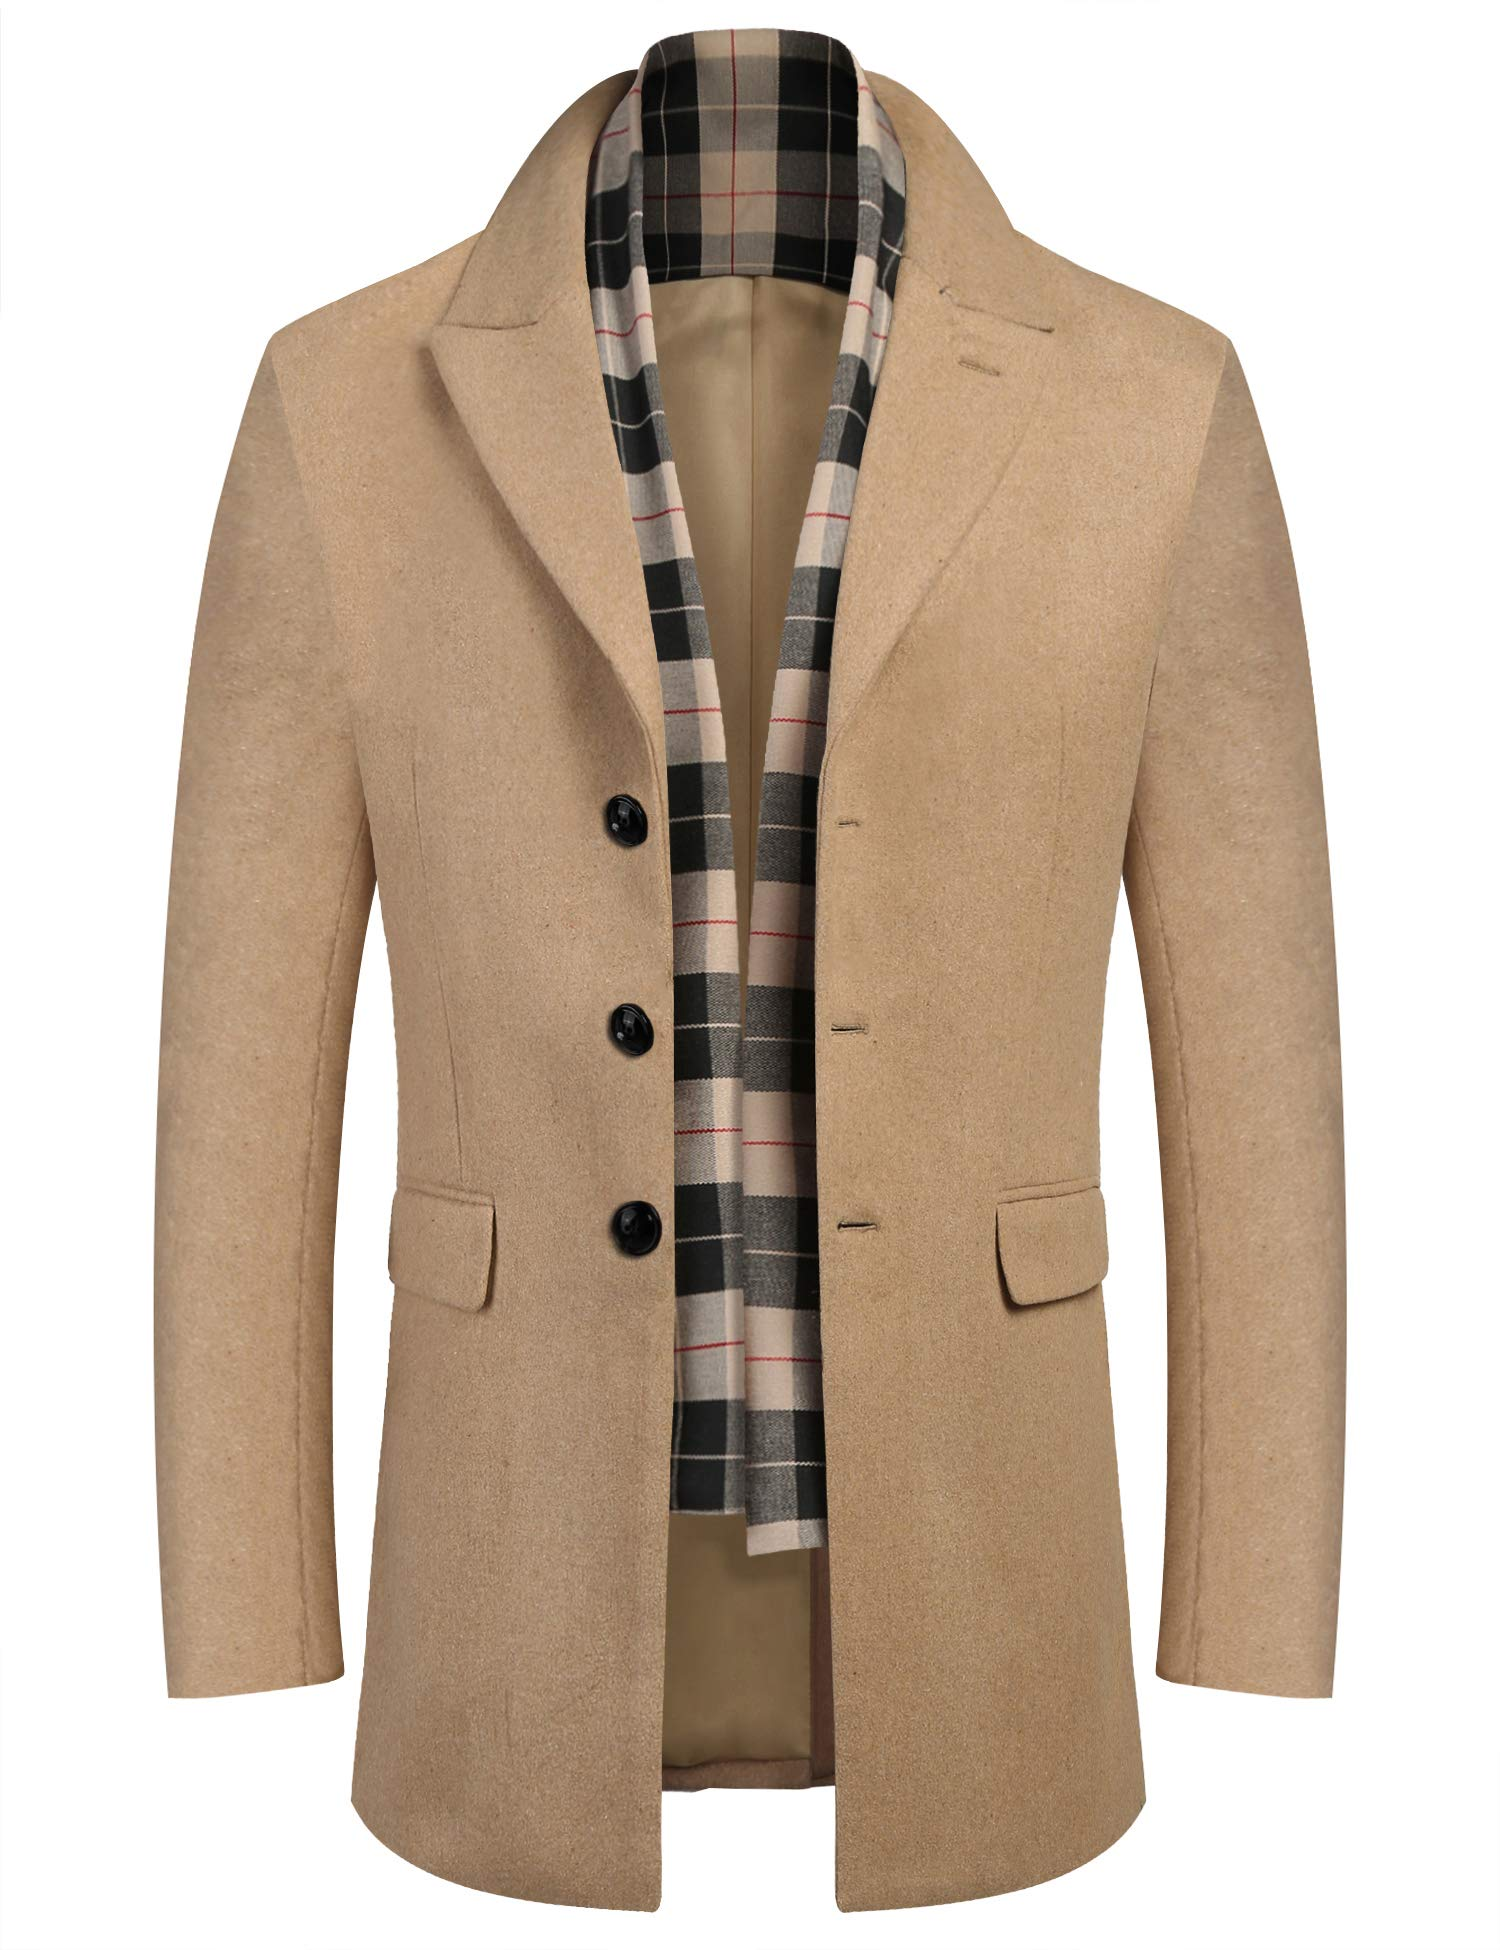 COOFANDY Men Woolen Dress Coats Winter Wool Jacket & Coat with Removable Plaid Wool Scarf (Khaki M) by COOFANDY